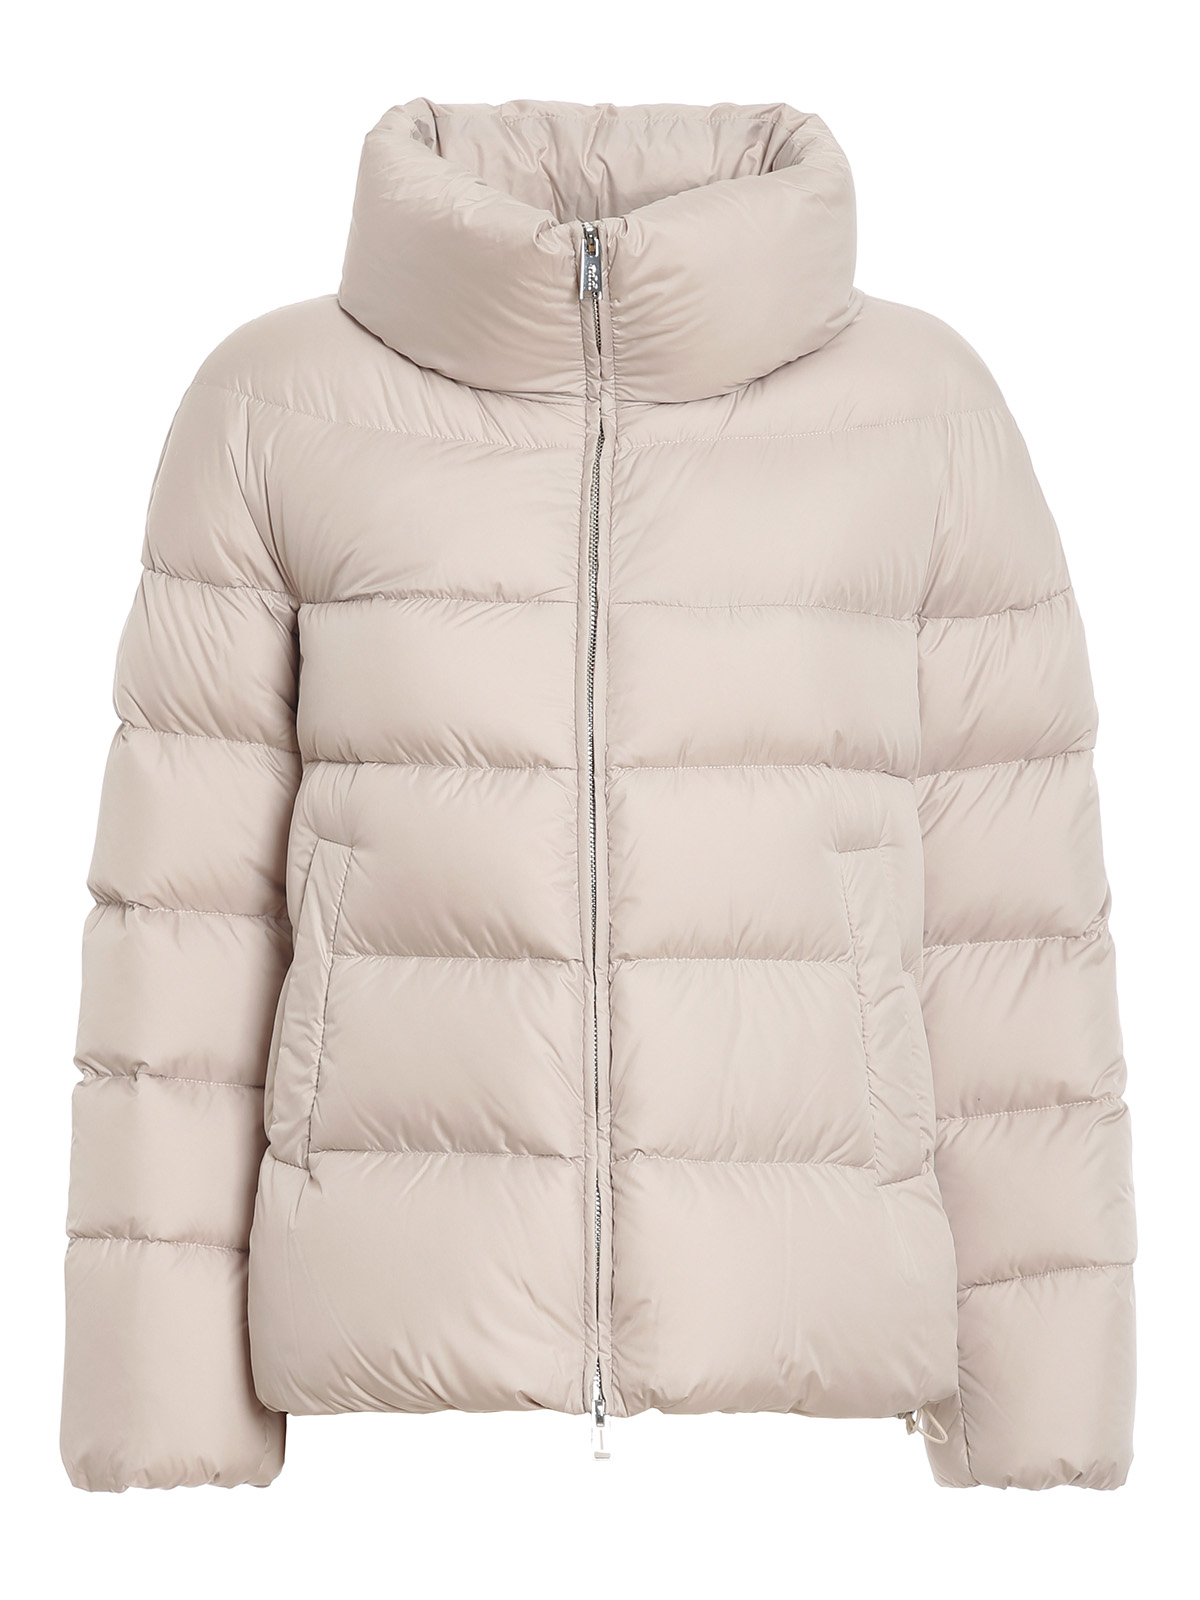 Add BEIGE QUILTED PUFFER JACKET